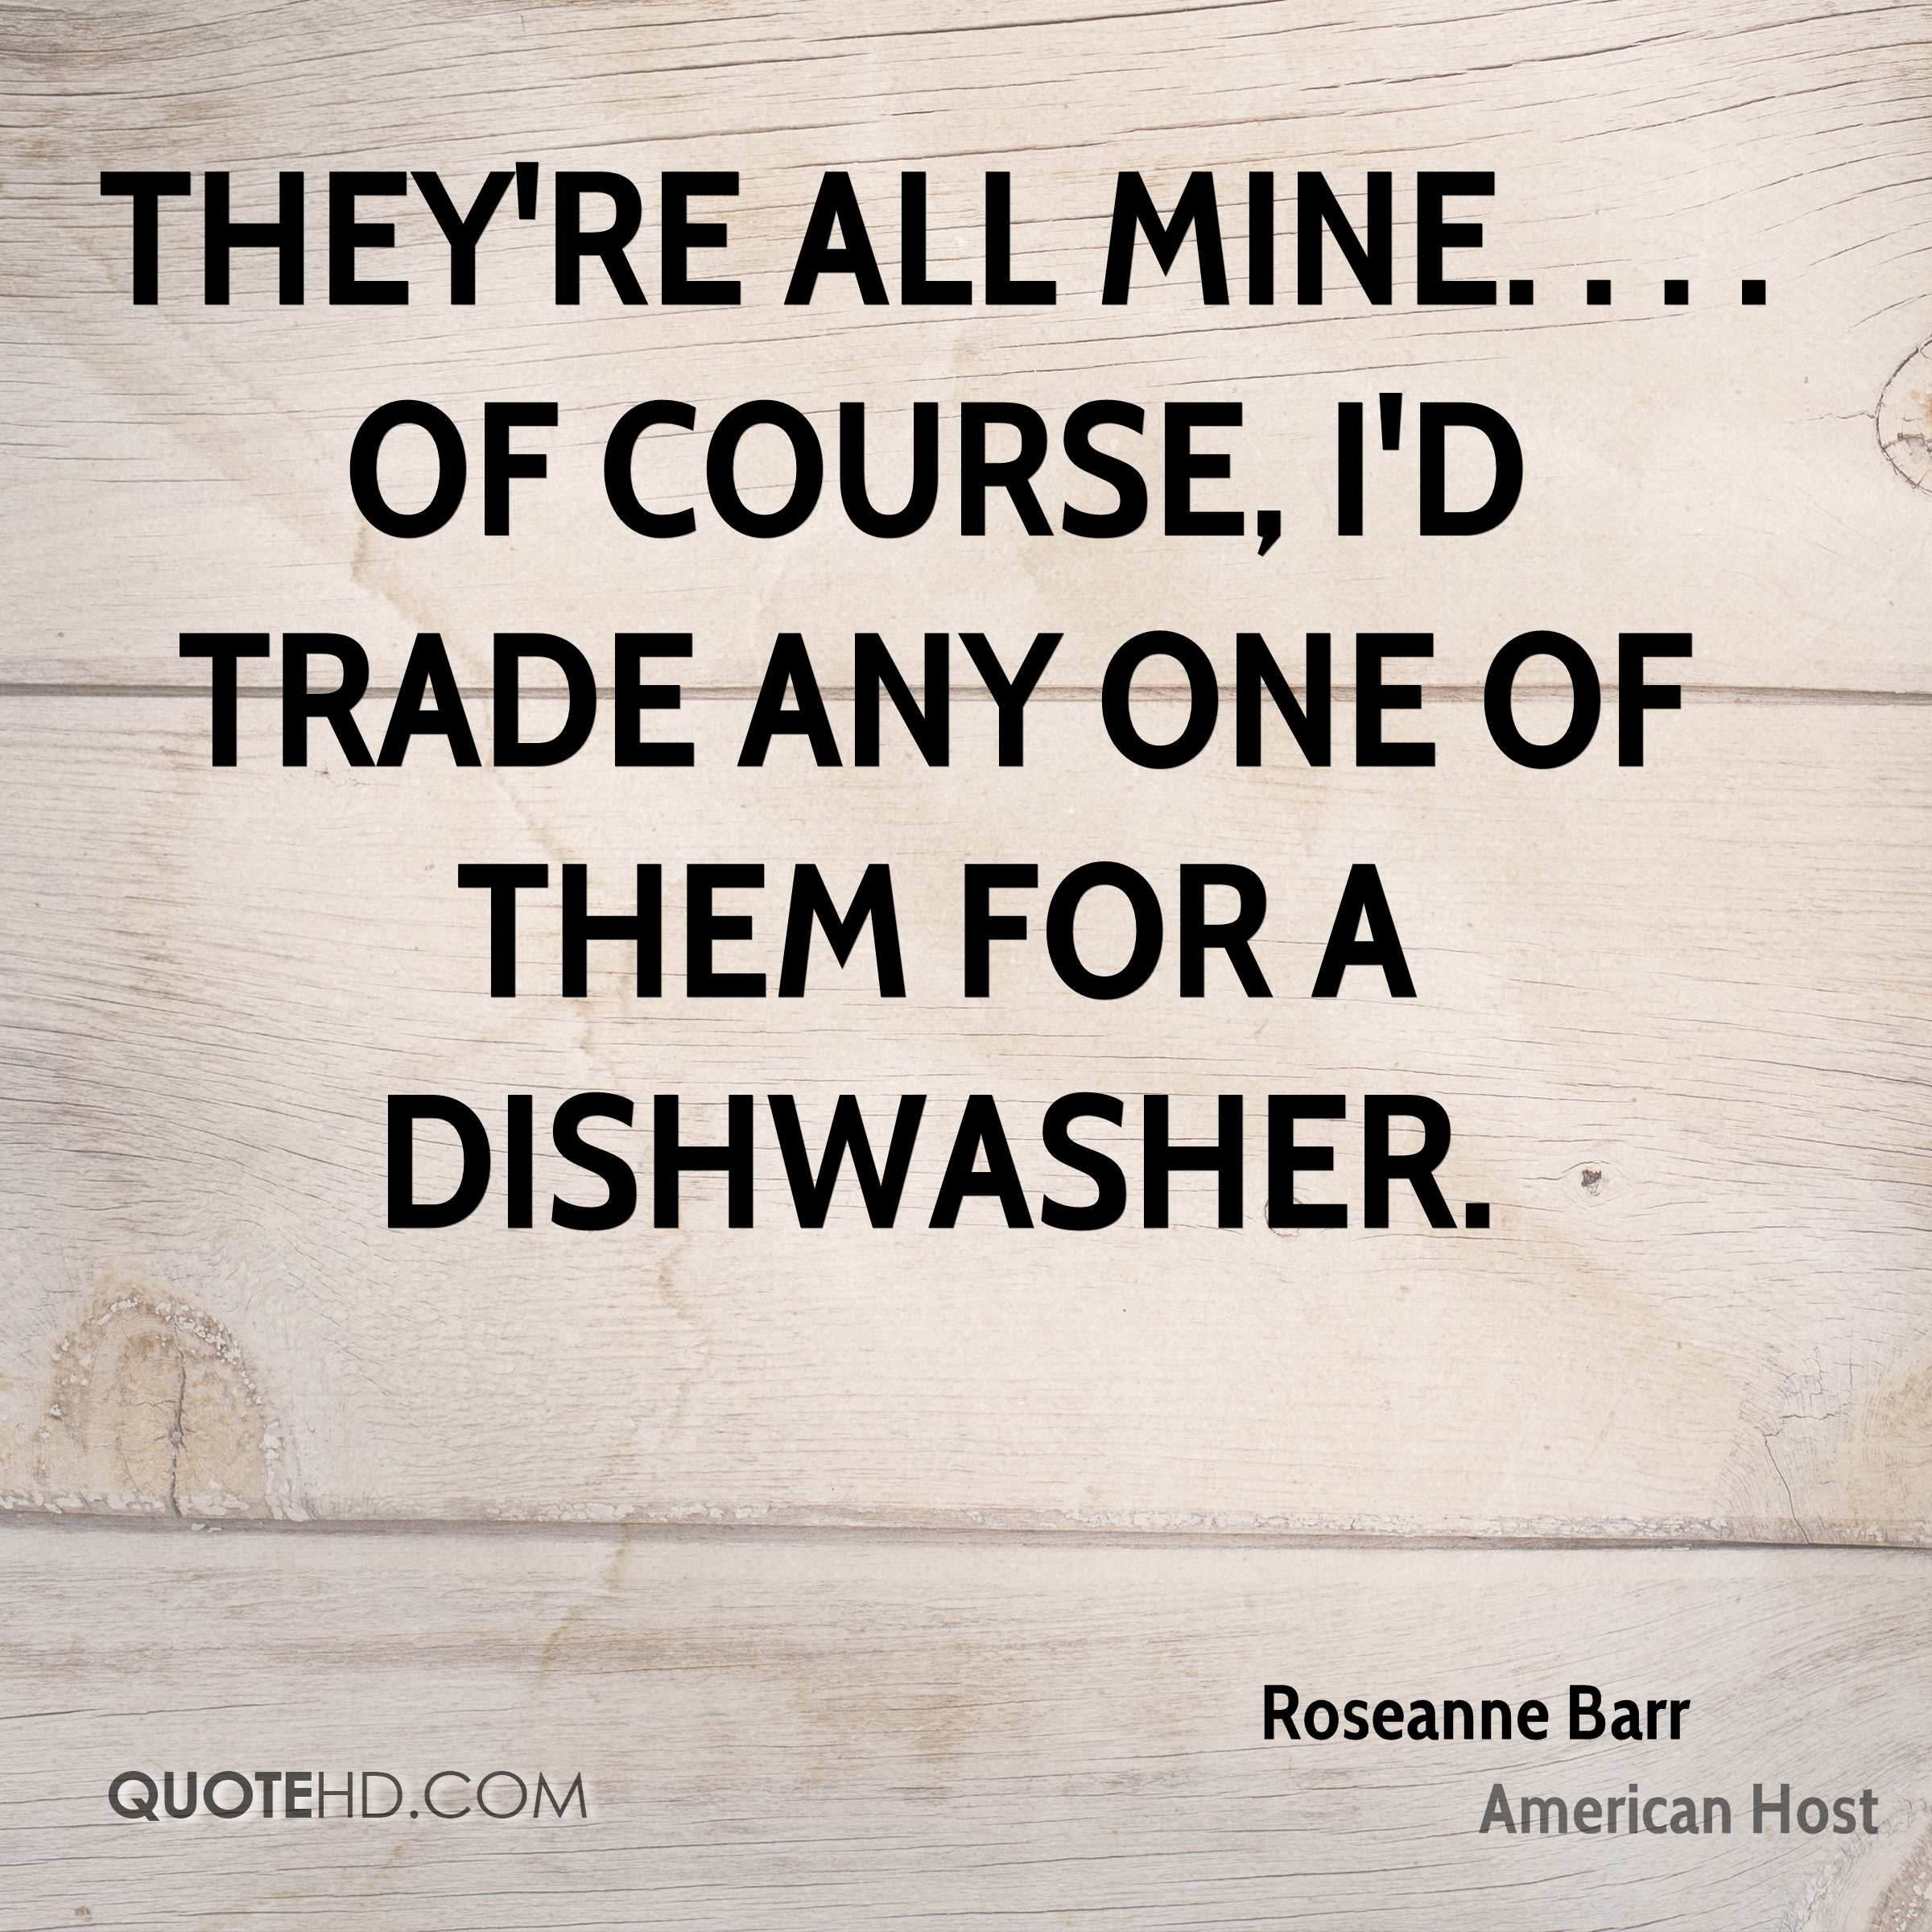 They're all mine. . . . Of course, I'd trade any one of them for a dishwasher.